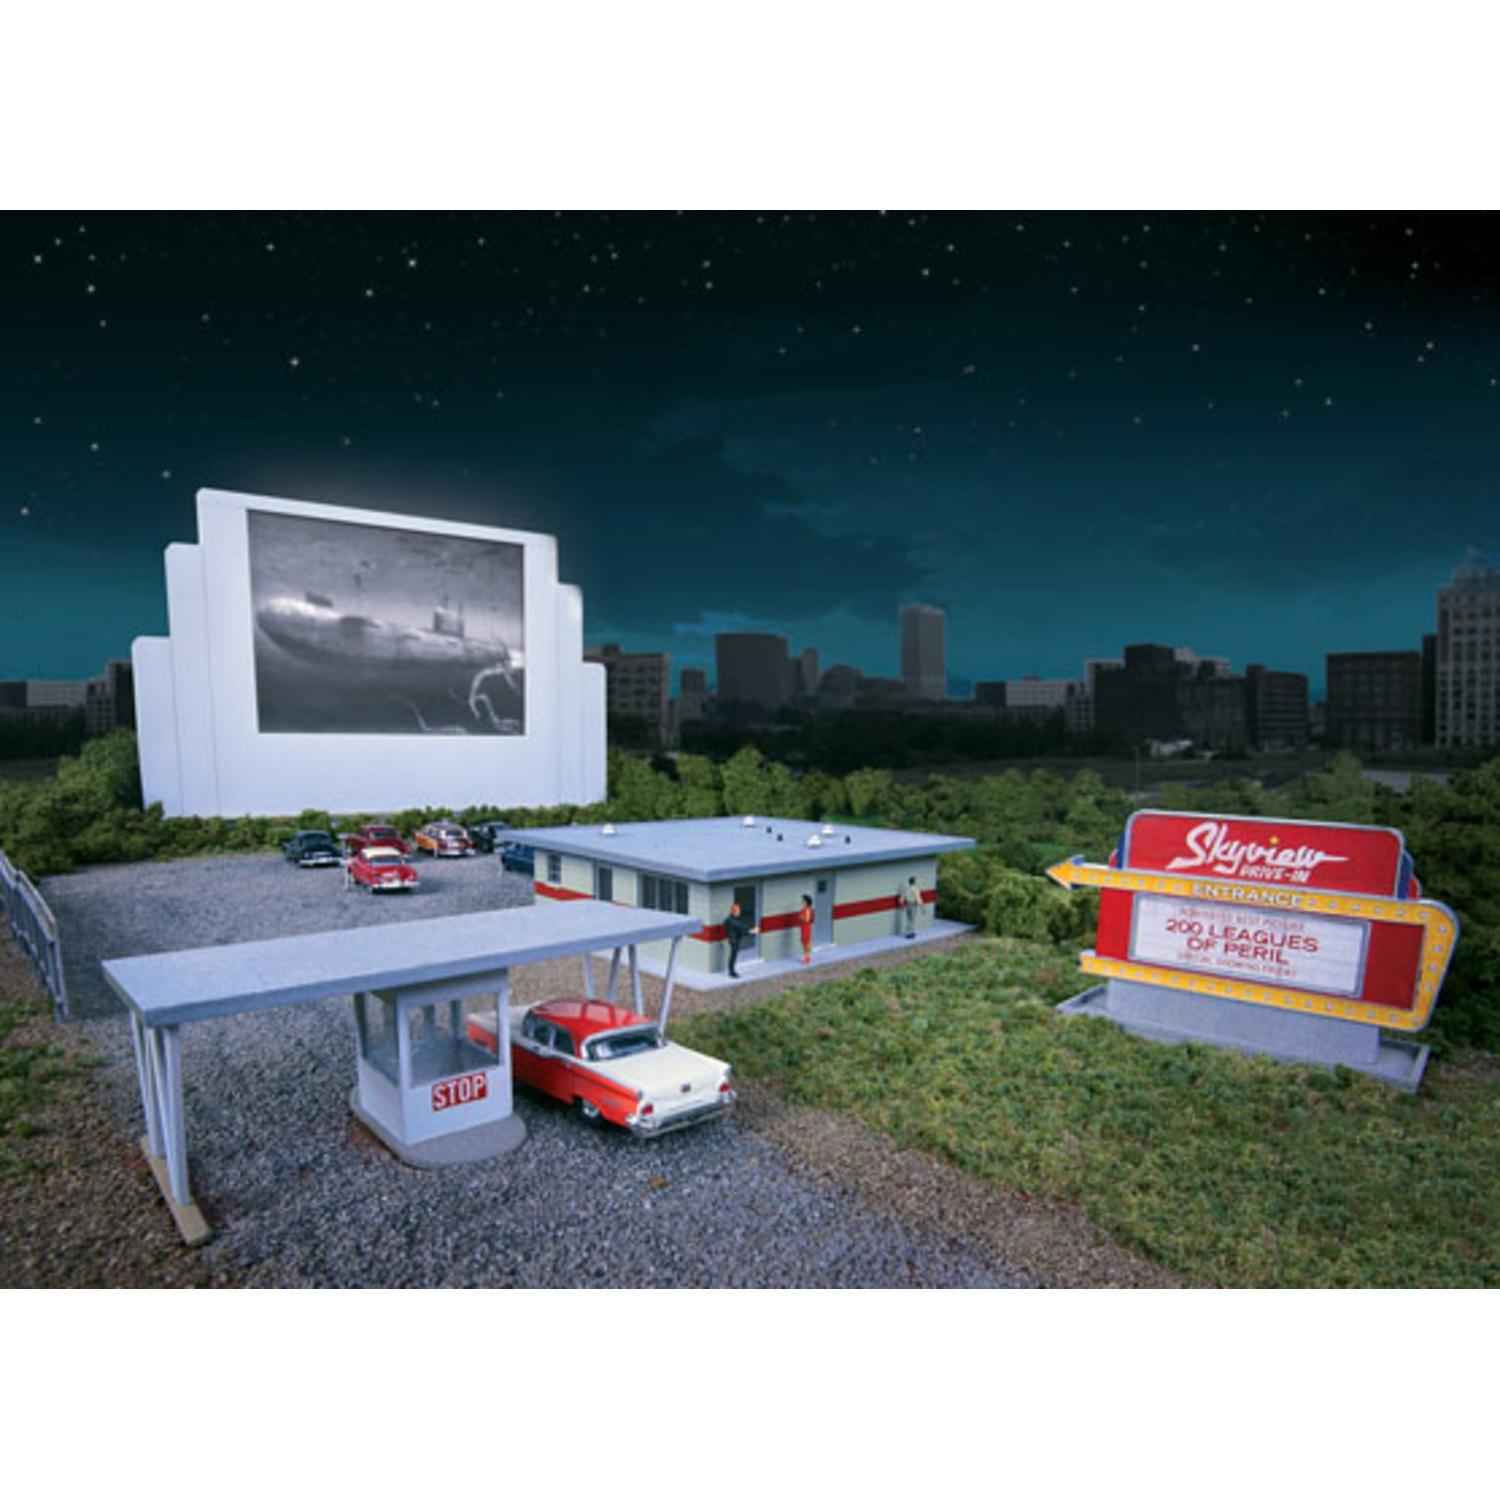 H0 Skyview Drive-In